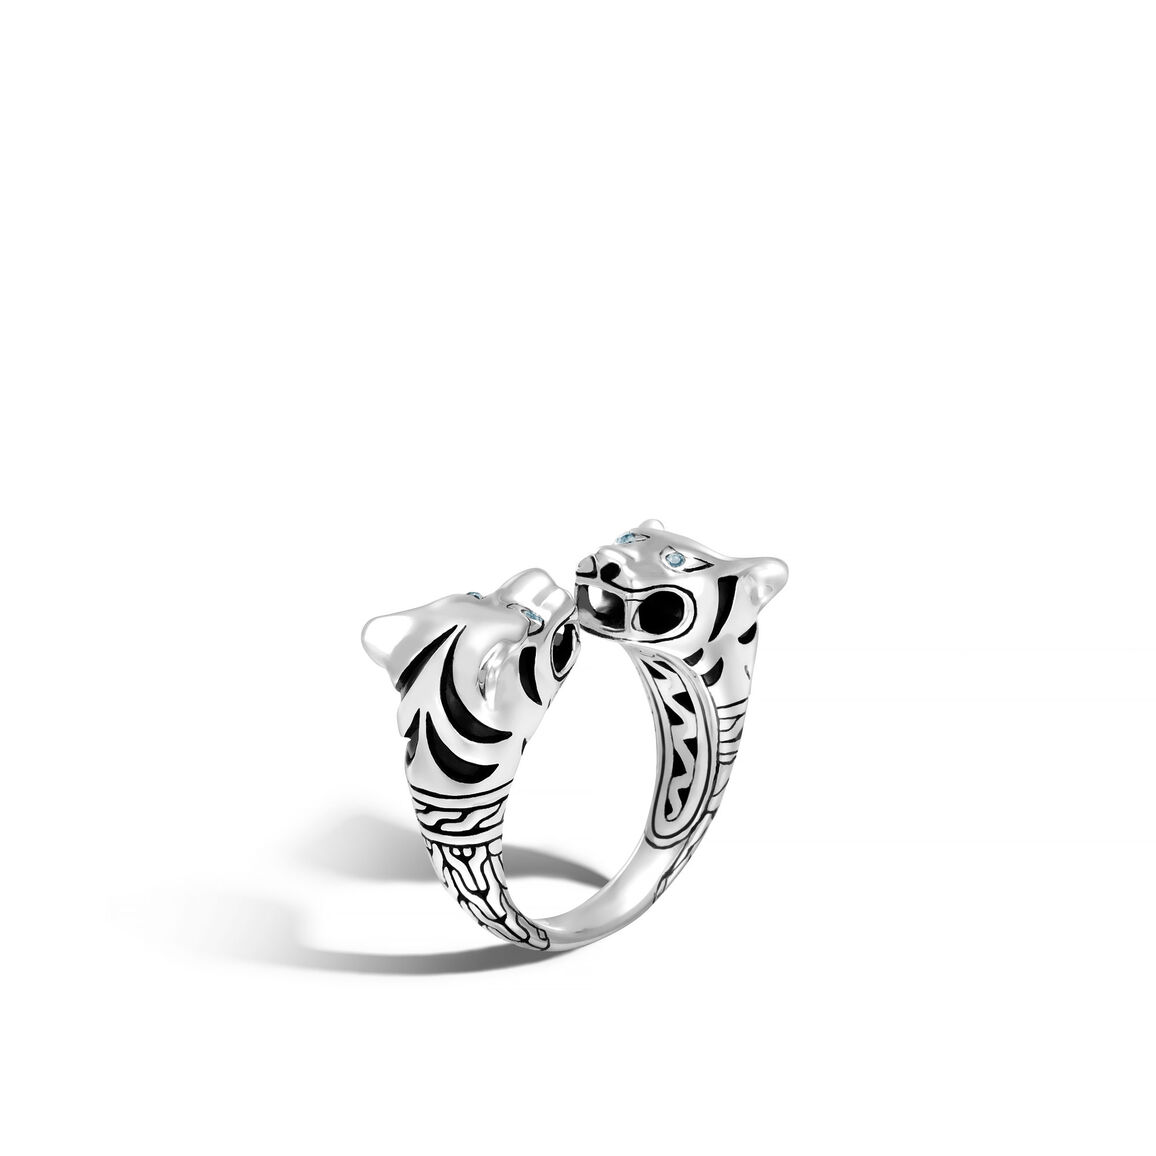 Legends Macan Double Head Ring in Silver